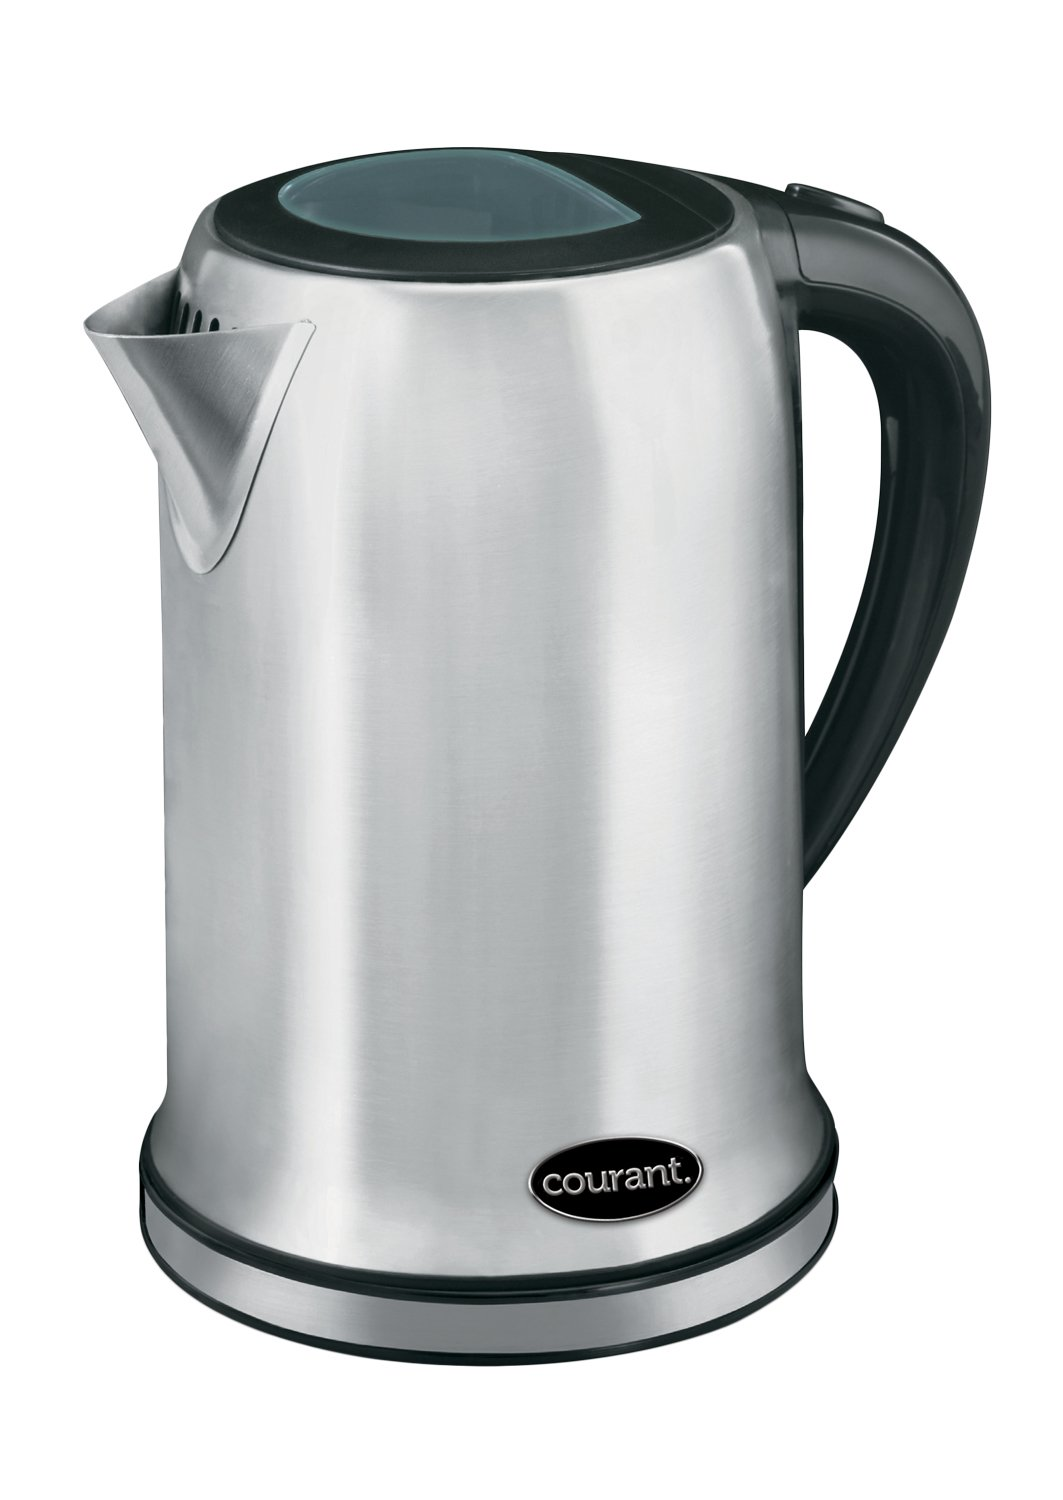 Courant Stainless Steel Cordless Electric Kettle (1.5 Liter)   B00BU6IHR6